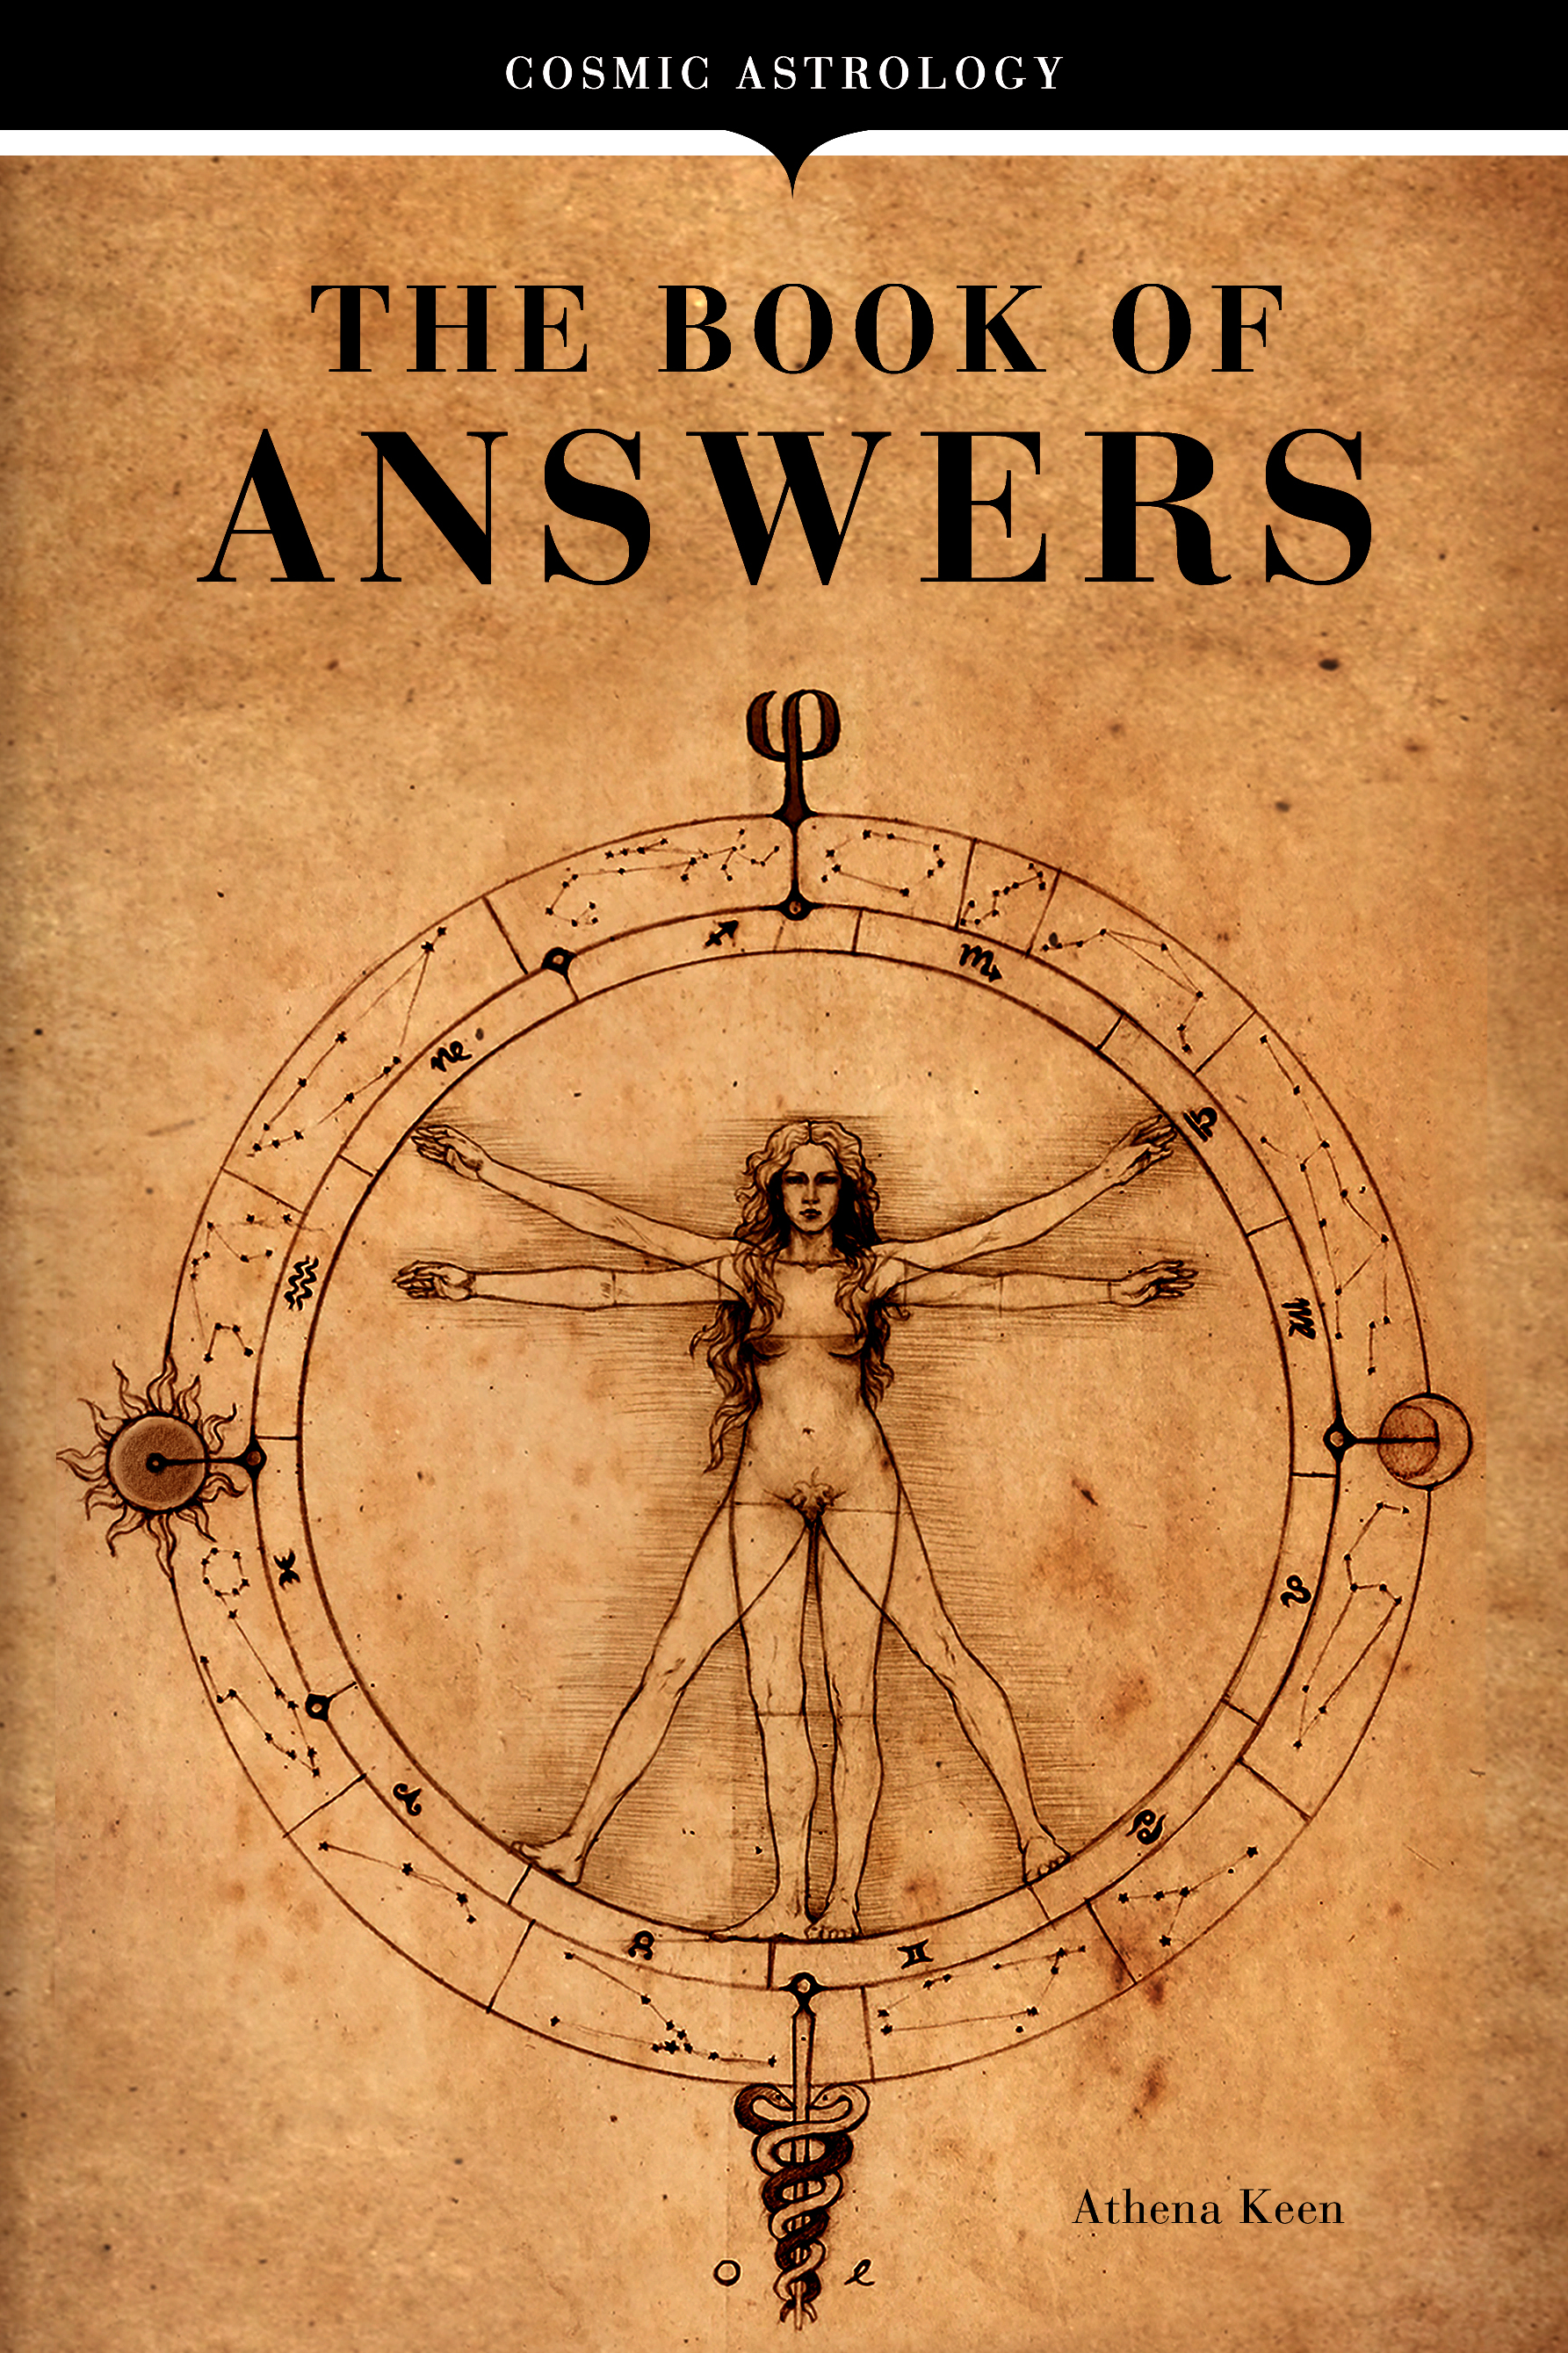 Cosmic Astrology: The Book of Answers